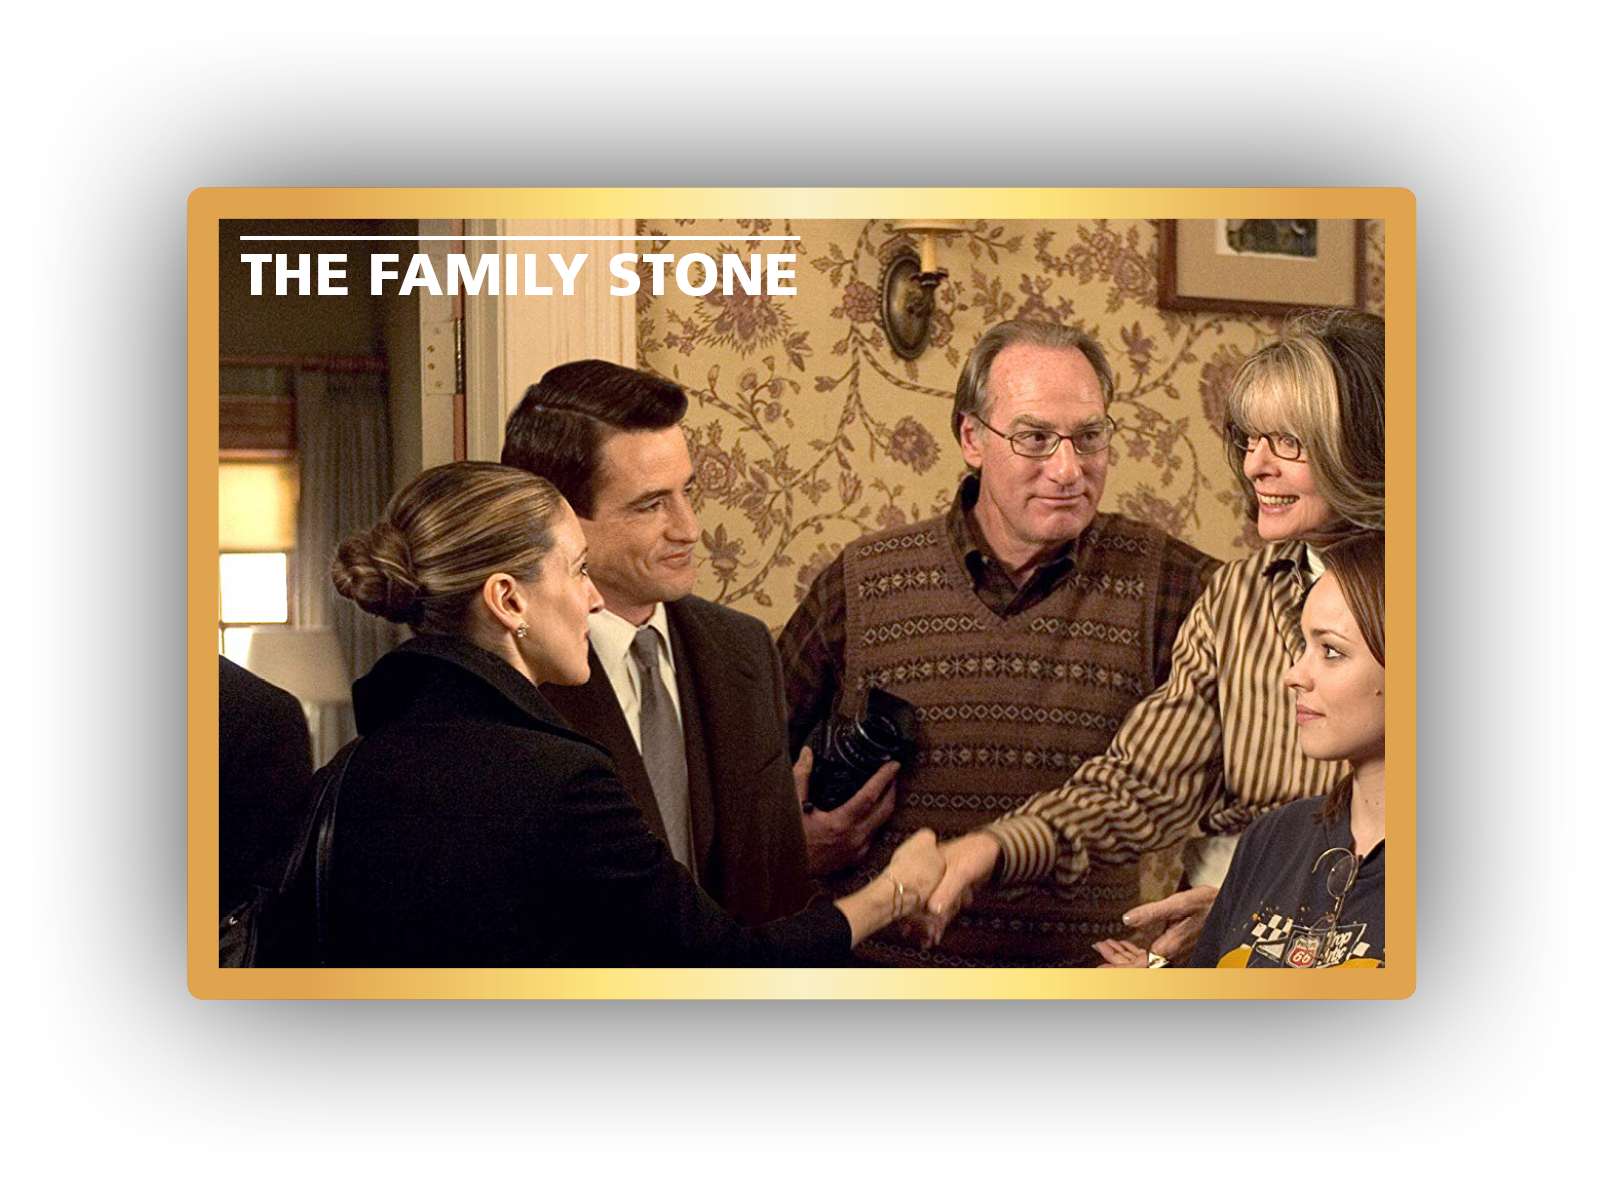 Långfilm 24 november kl 18:30 - The Family Stone